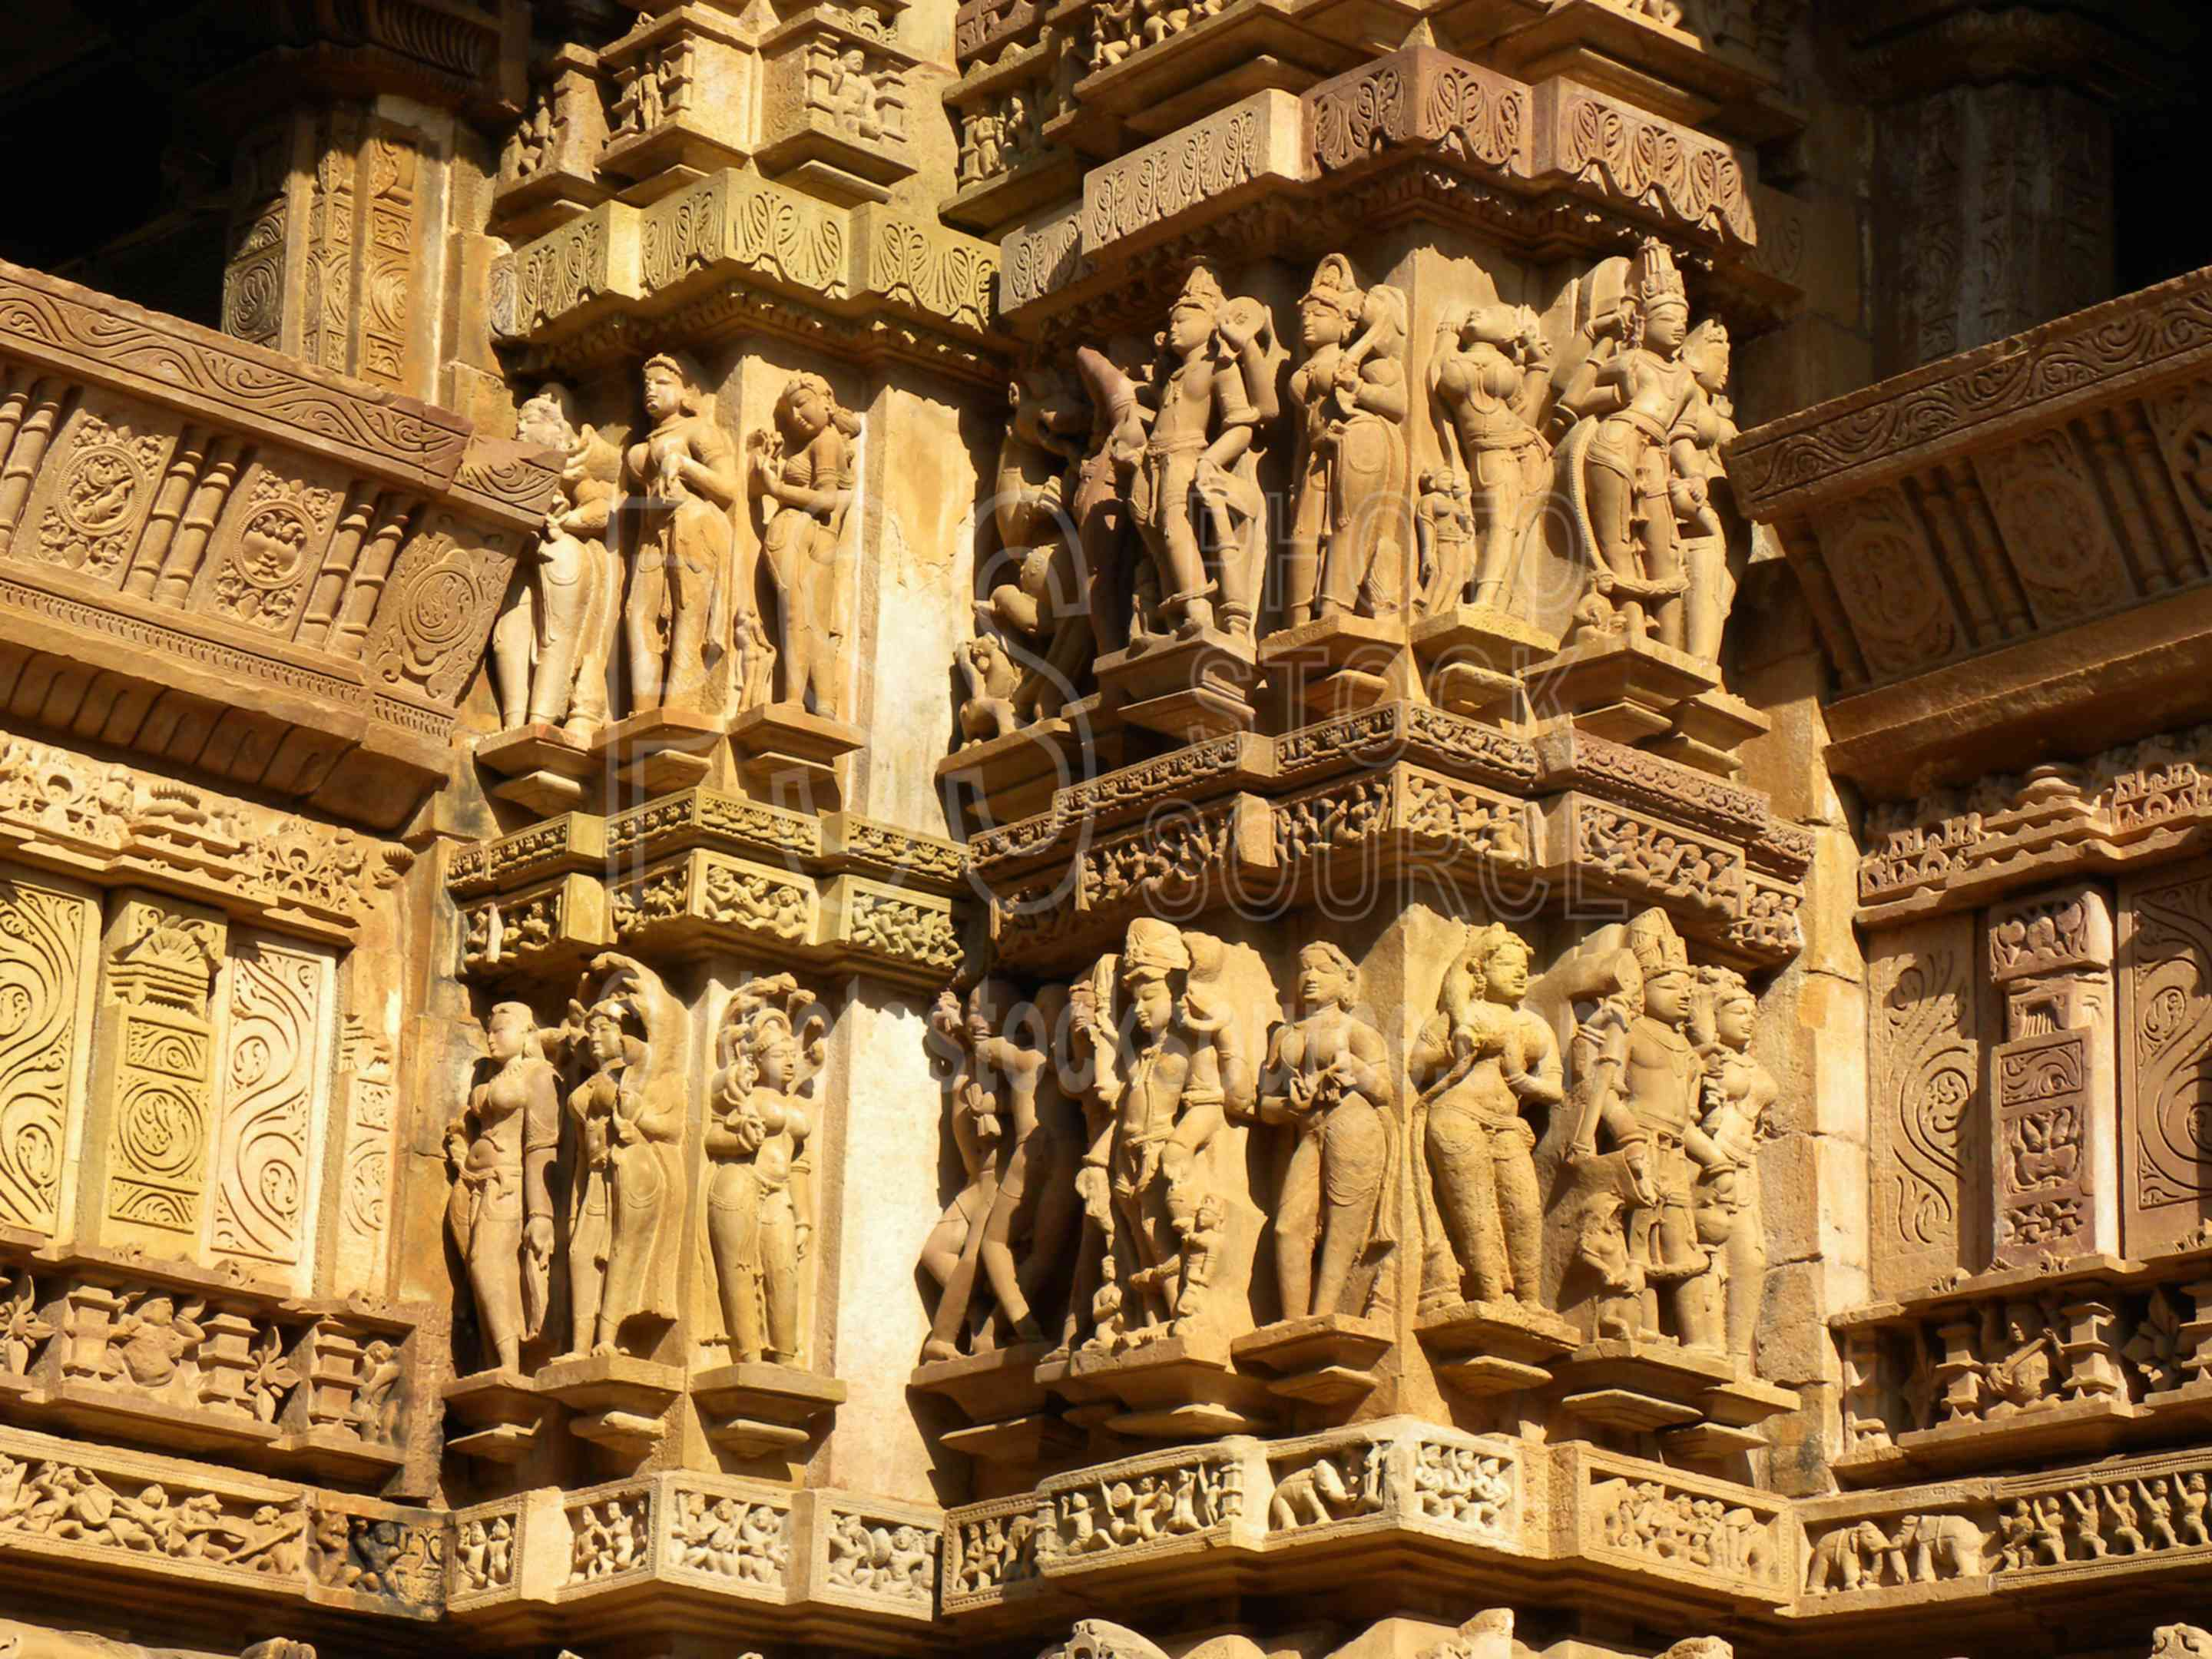 Lakshmana Temple Carvings,western complex,temple,carvings,erotic,art,erotic art,architecture,temples